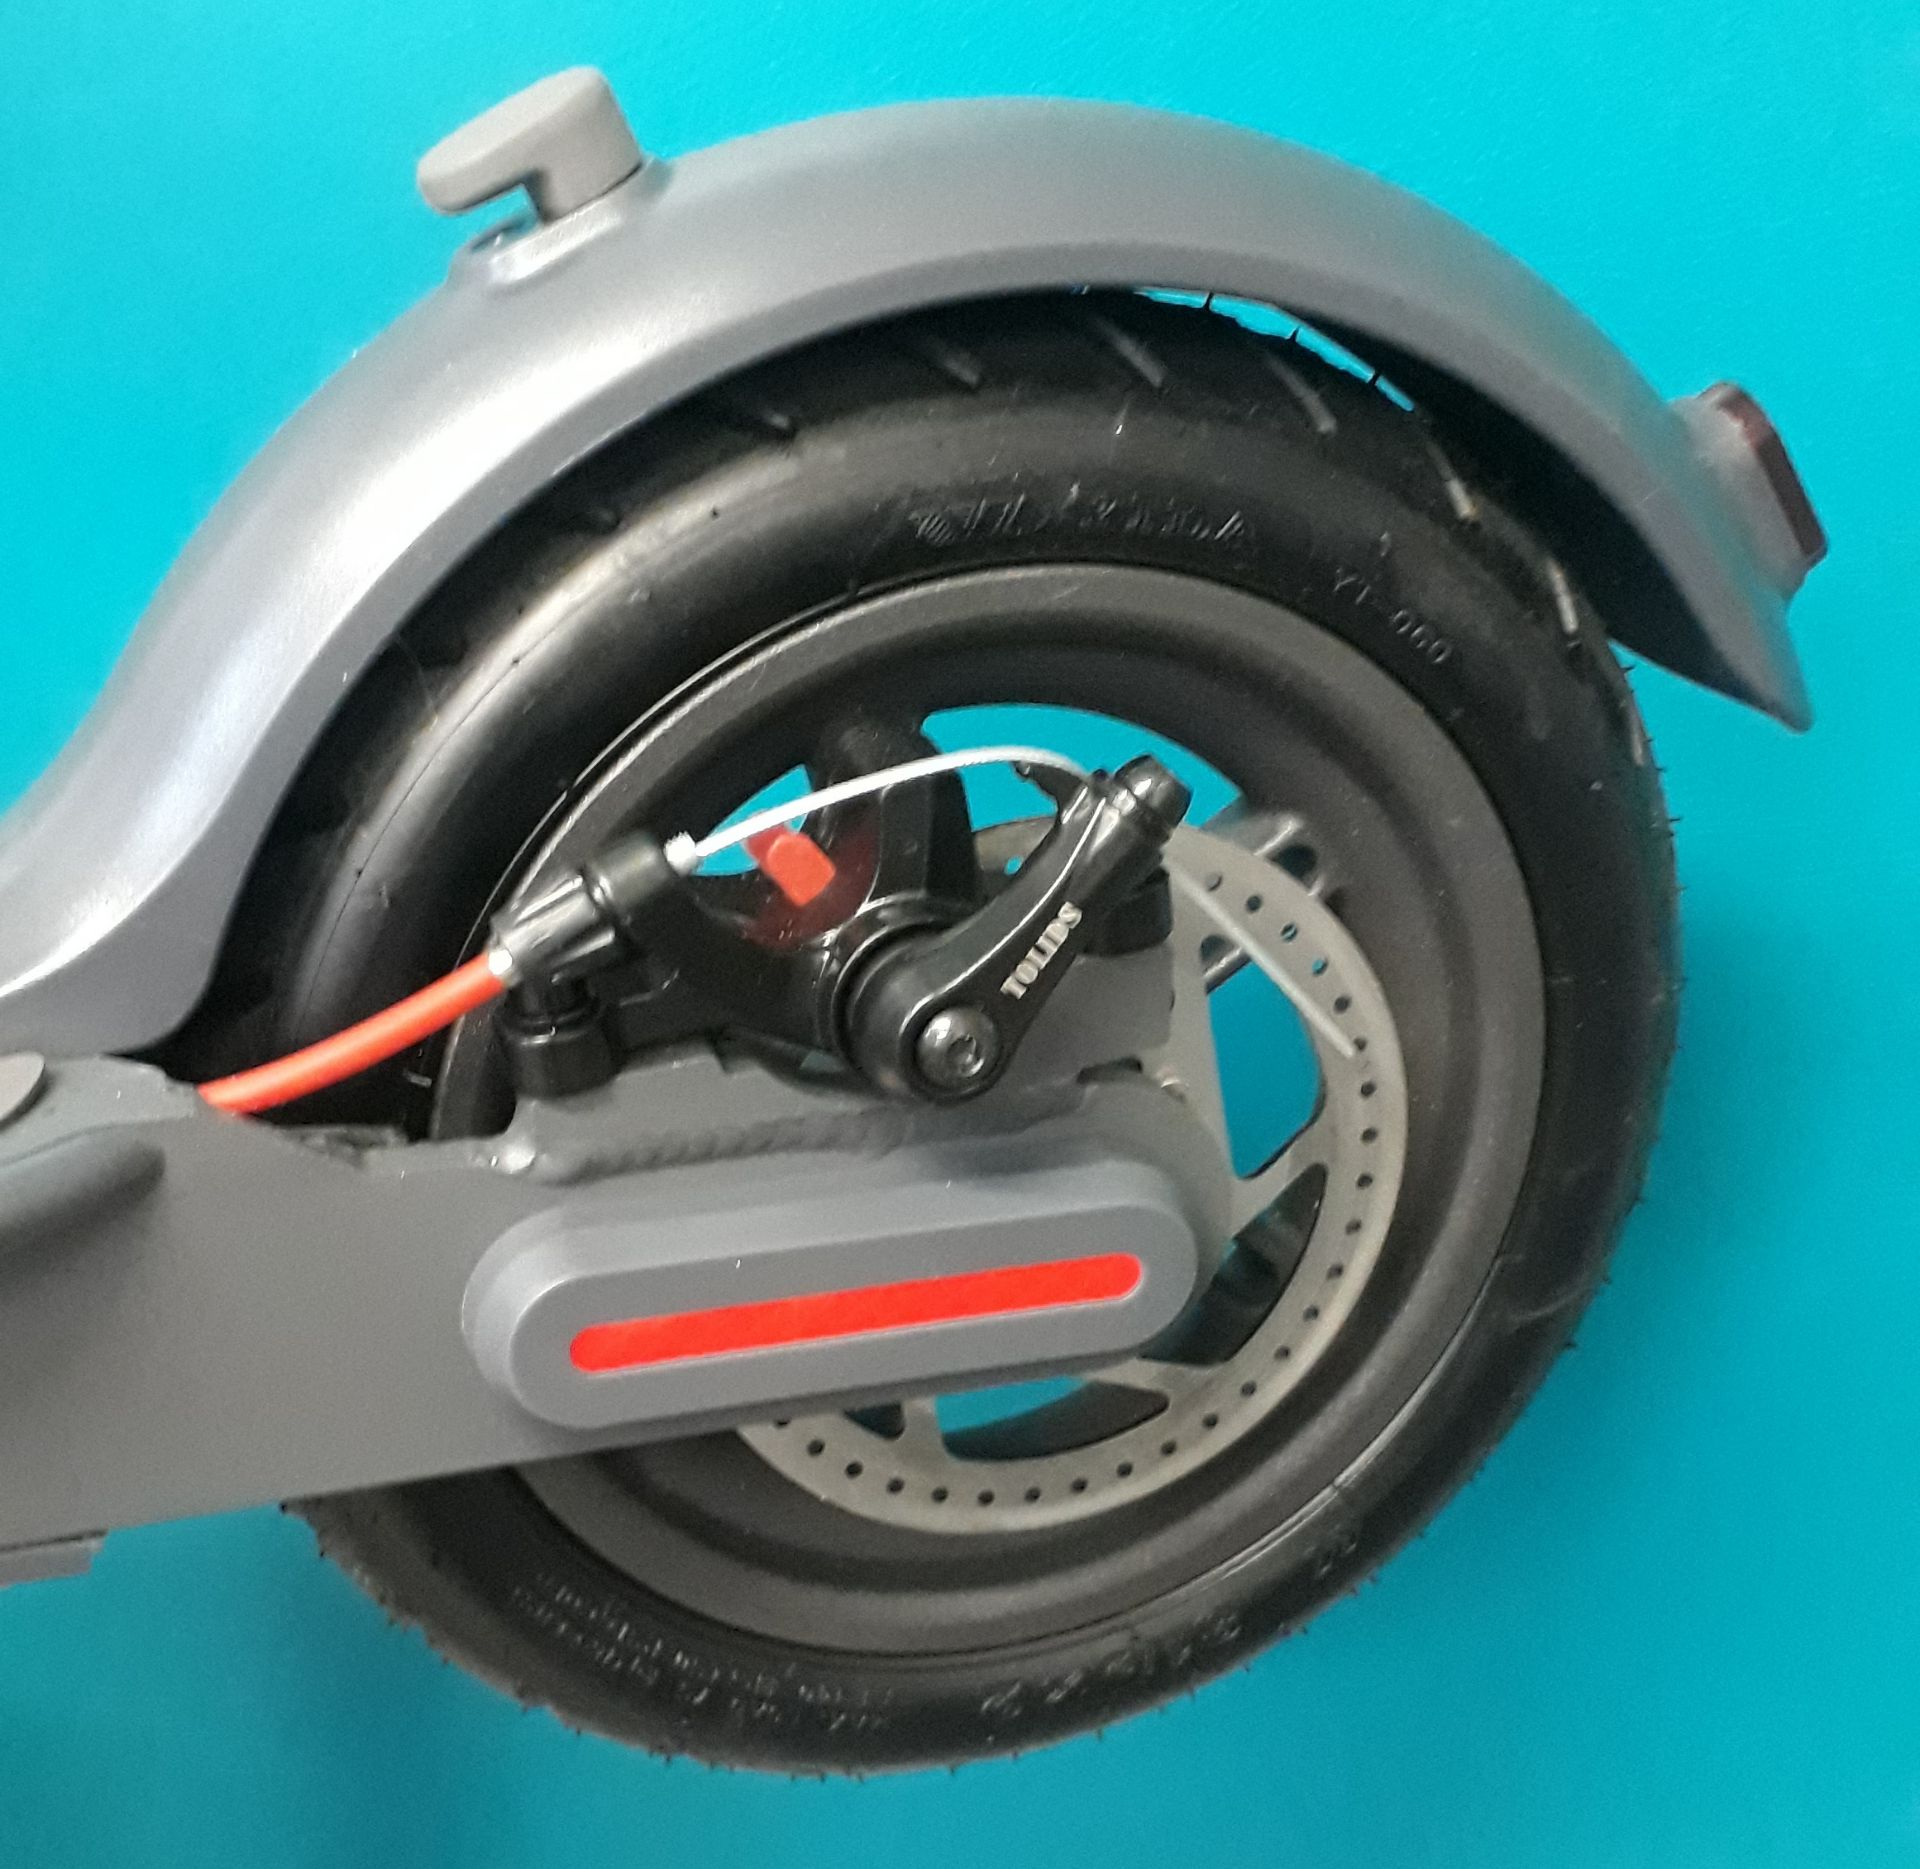 + VAT Brand New Hush Foldable Electric Scooter - Three Speeds - Max Speed 25km/h - ABS Disc - Image 4 of 4